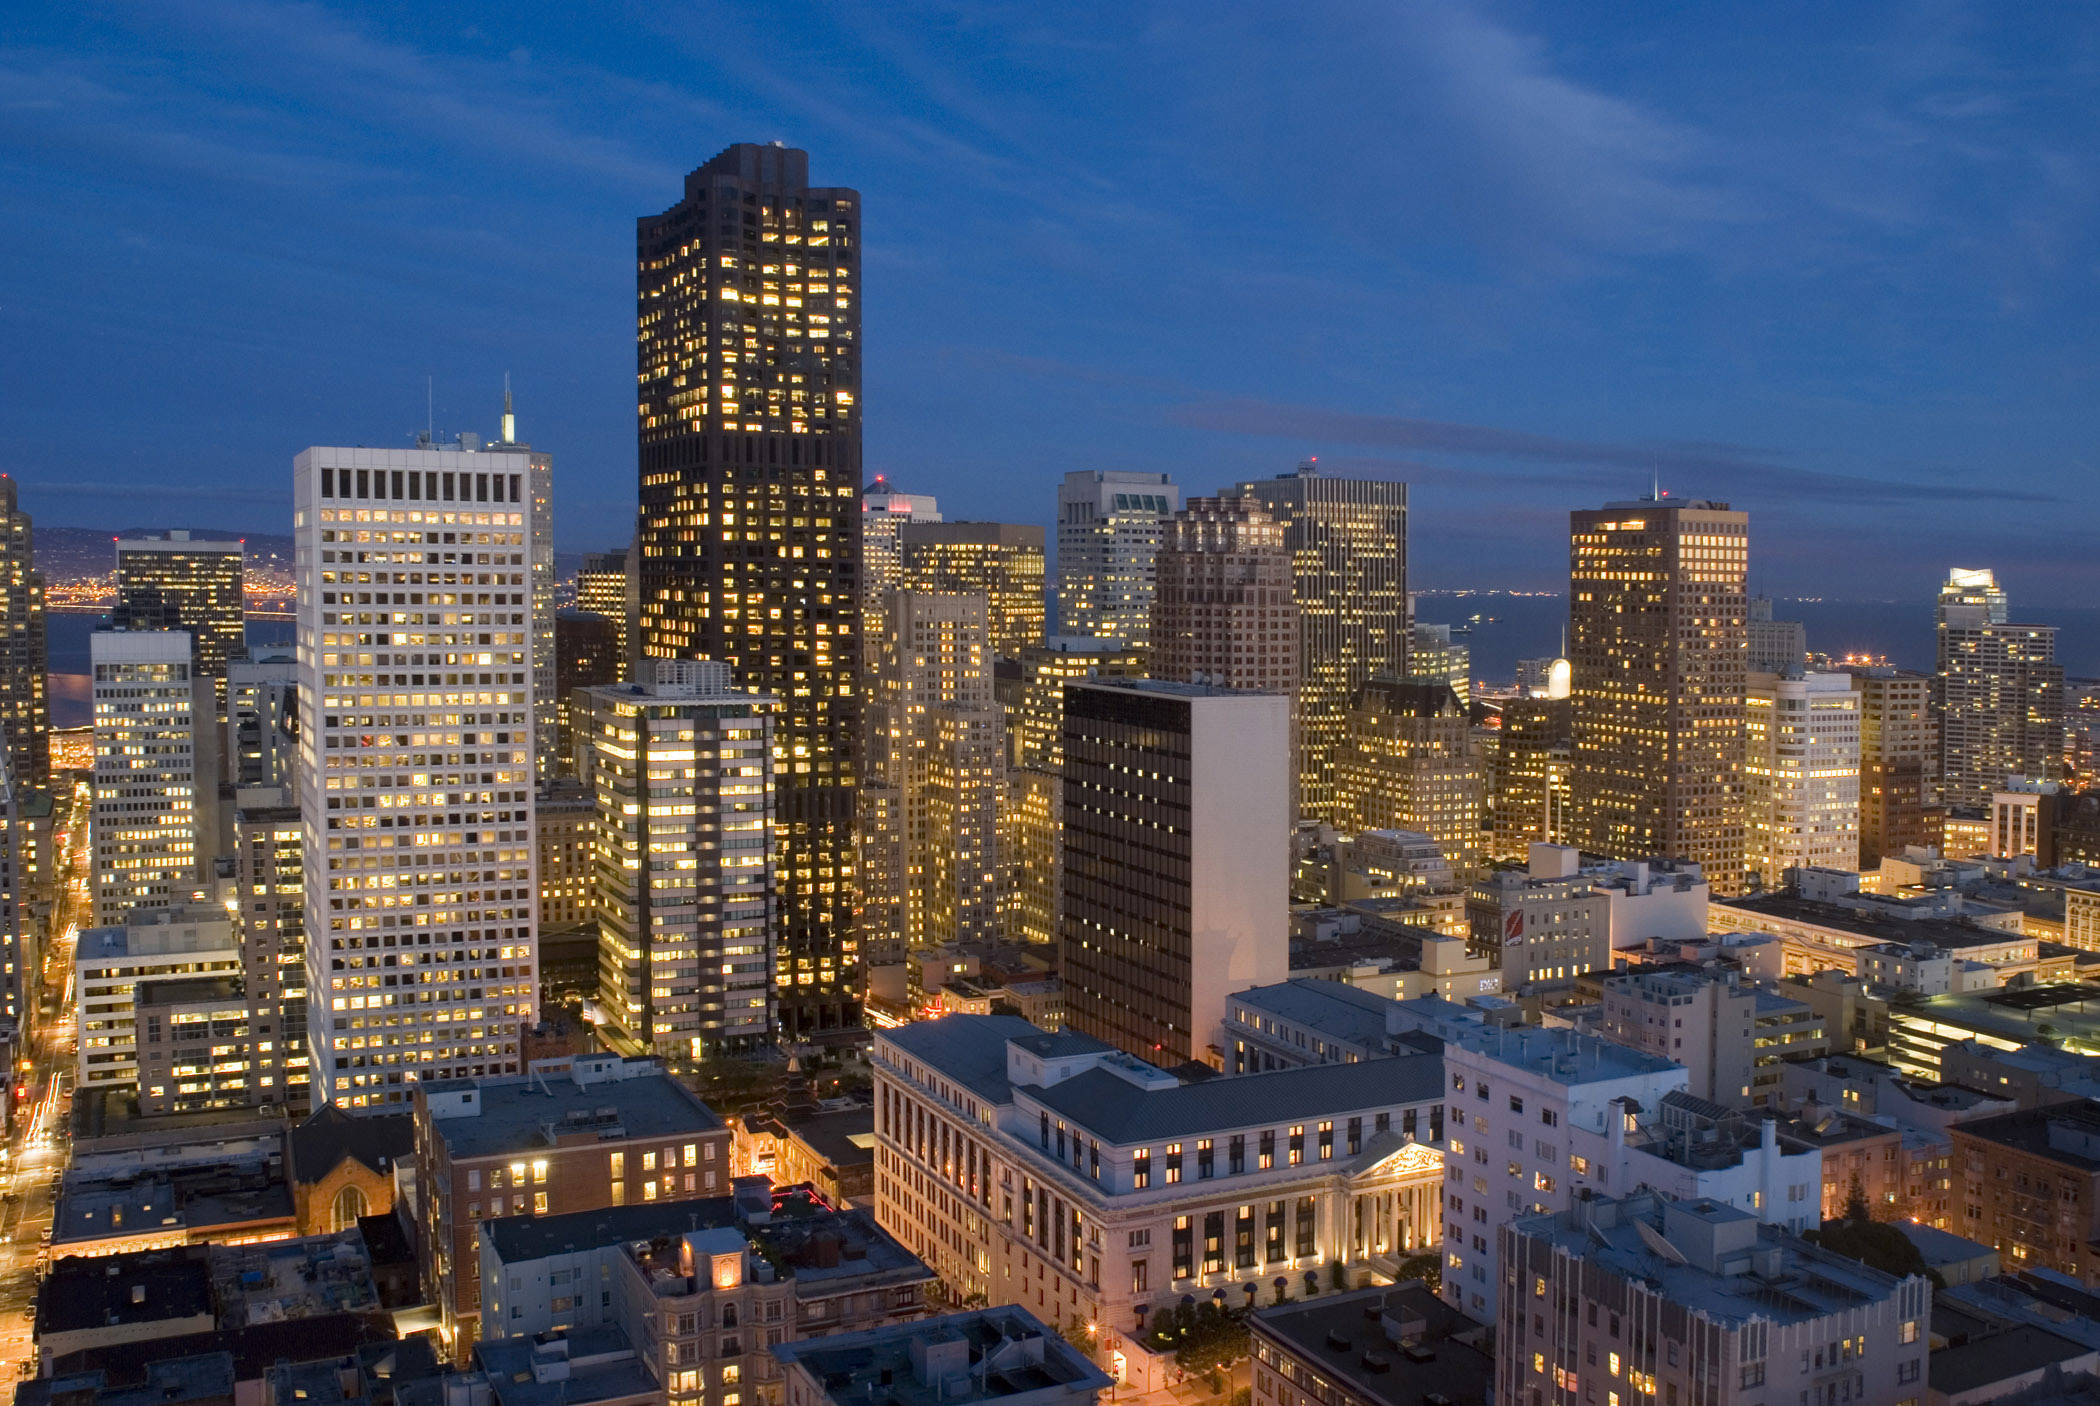 Beautiful Lights From Architectural Buildings In San Francisco At Night In  Extensive View.